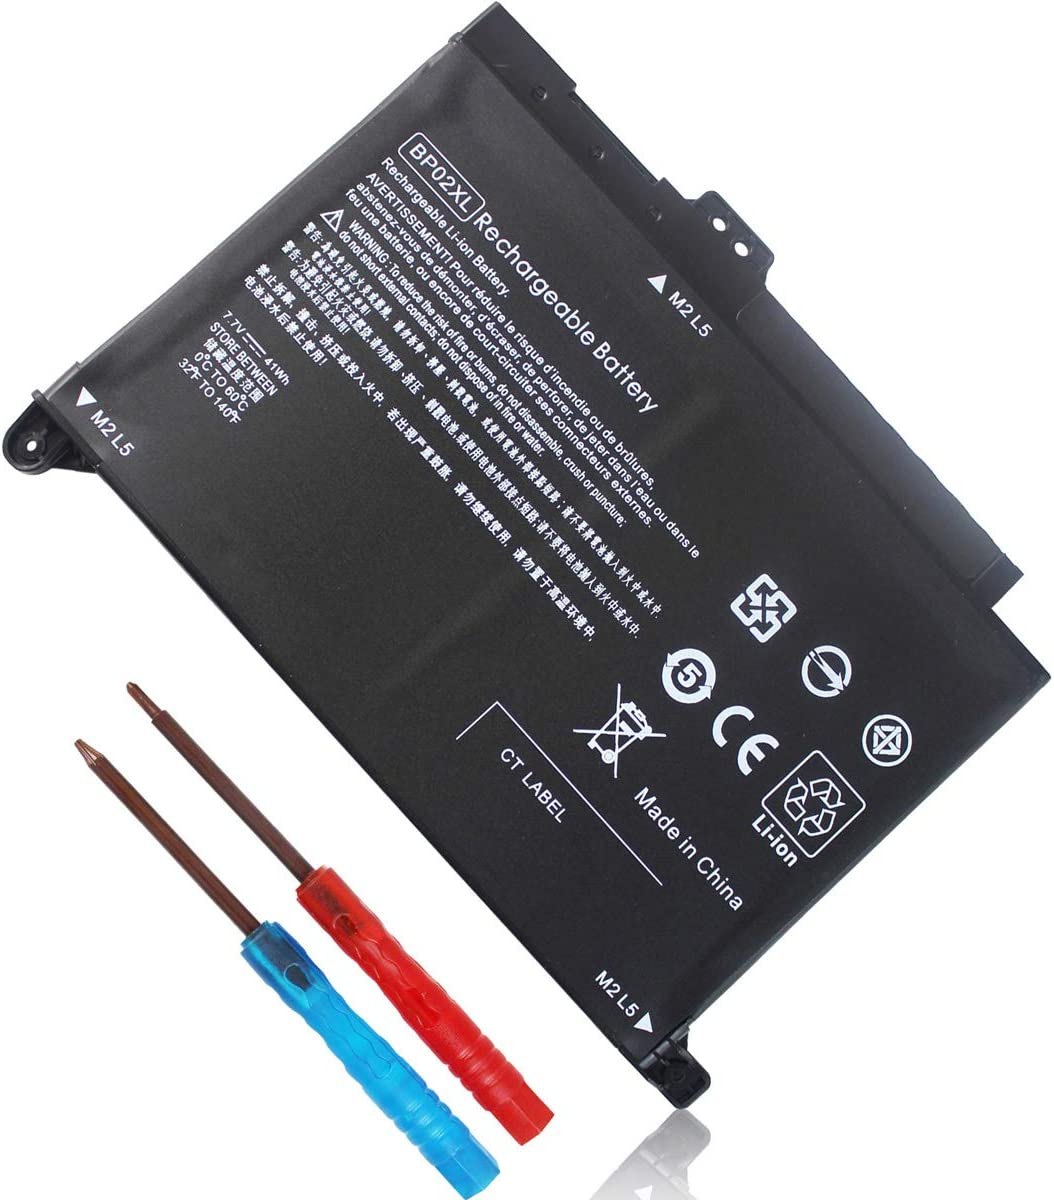 BP02XL 849909-850 Battery for HP Pavilion 15-AU000 15-AW000 Series 15-AU123CL 15-AU063CL 15-AU091NR 15-AW053NR 15-AU018WM 15-AU010WM 849569-421 849569-542 849909-855 HSTNN-UB7B HSTNN-LB7H 7.7V 41Wh